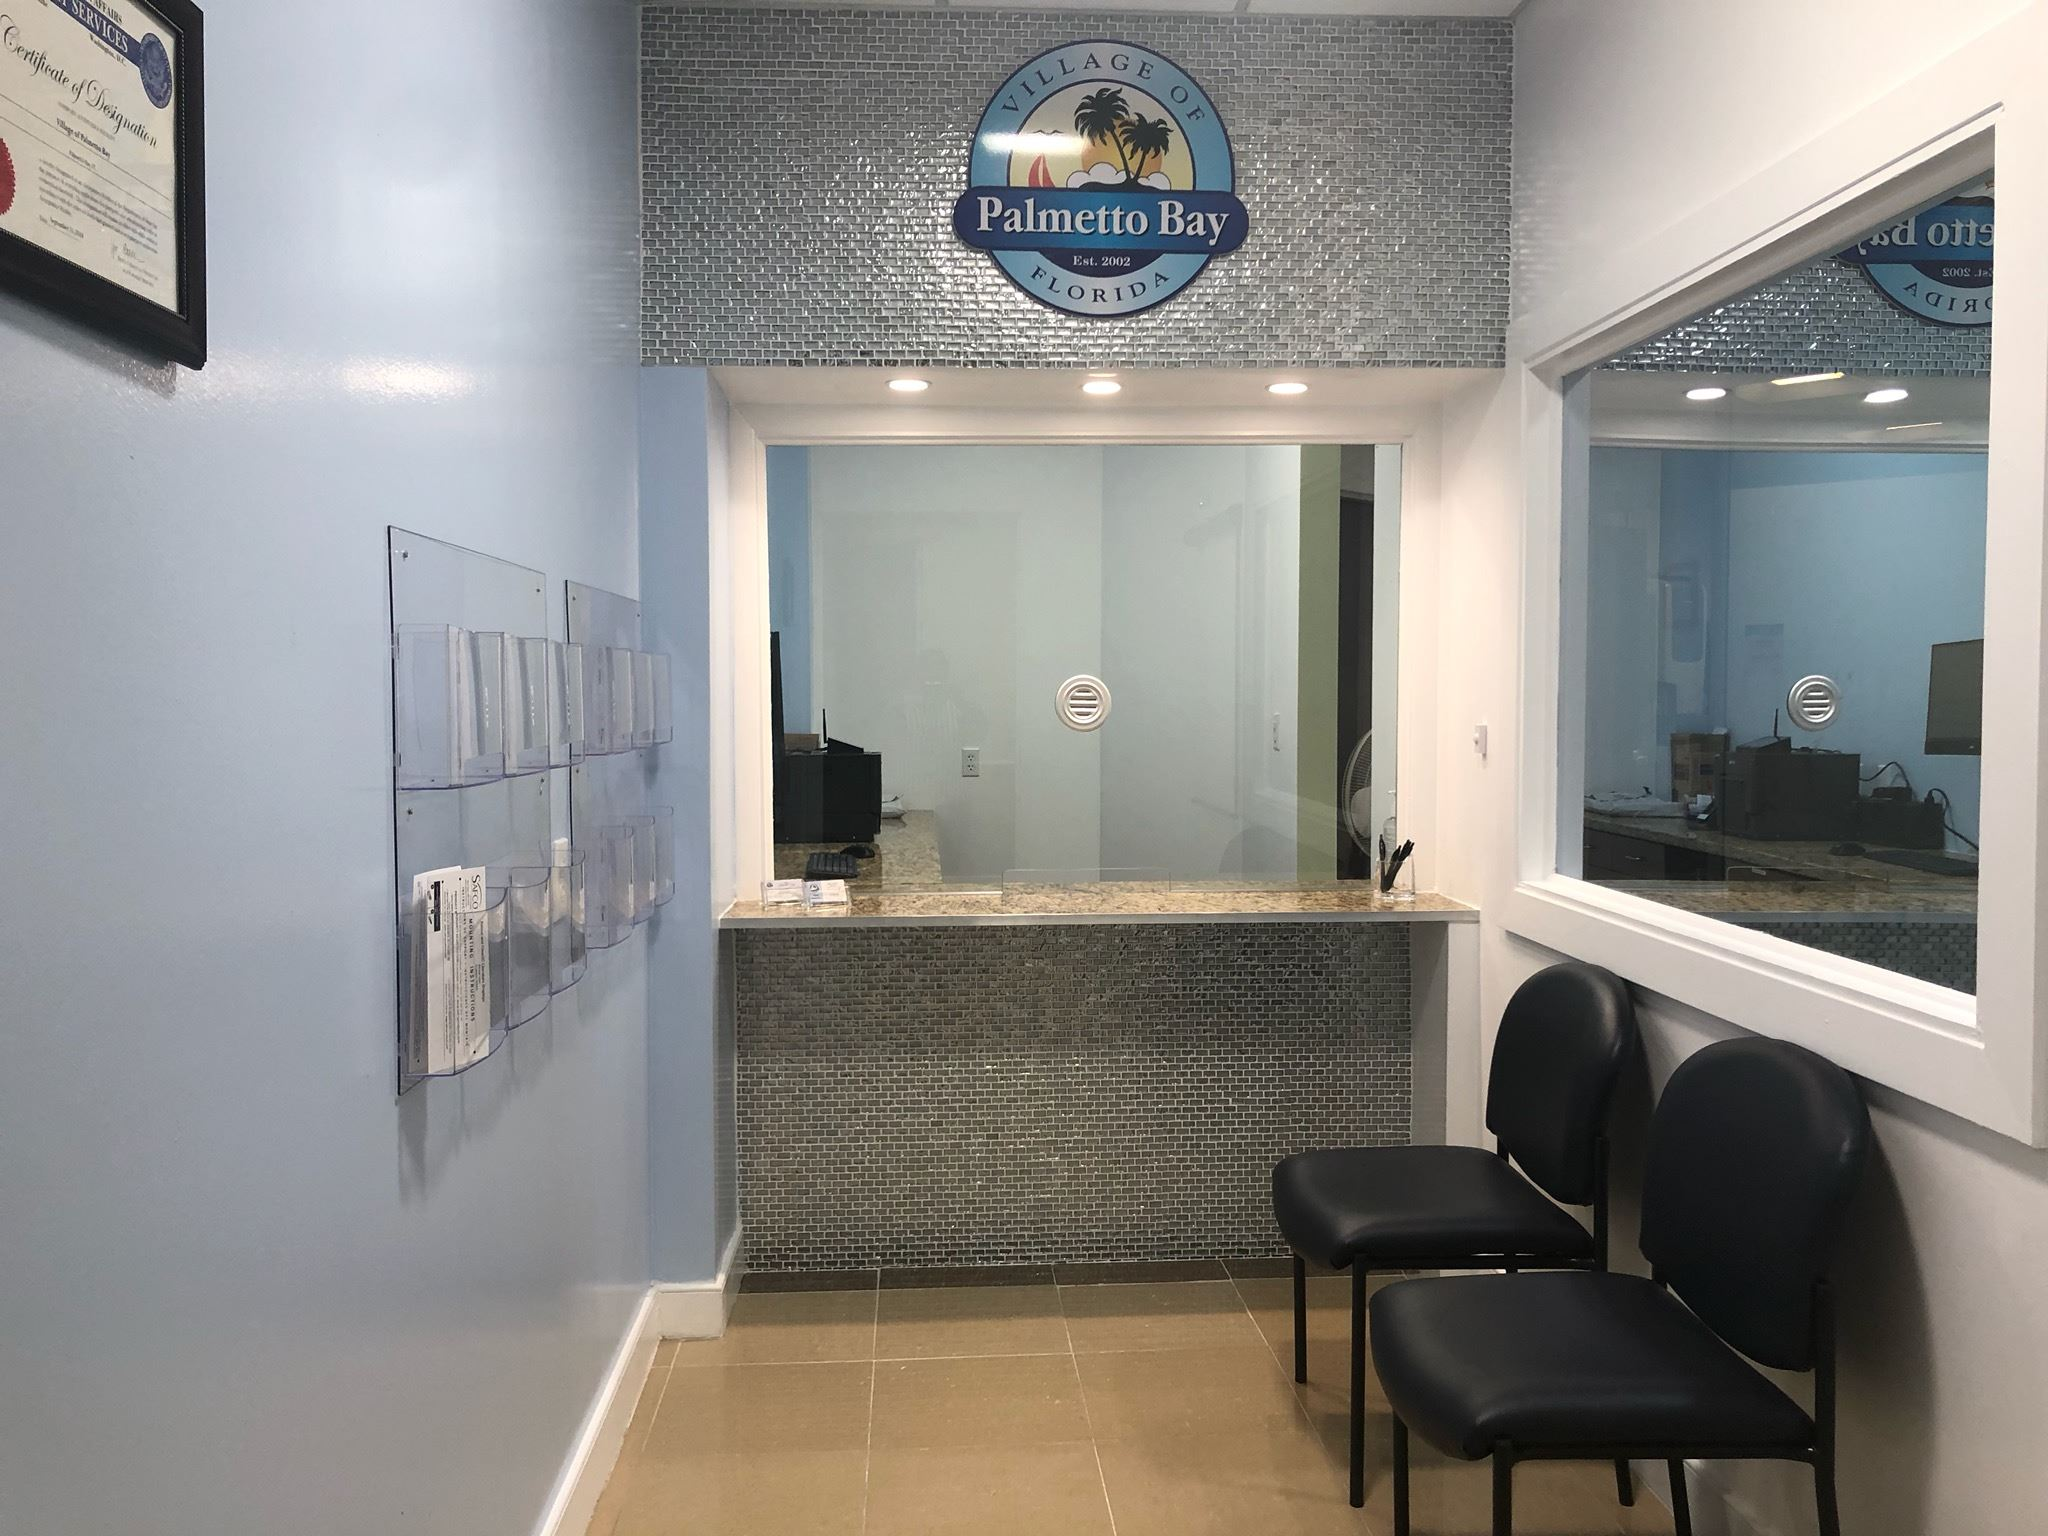 PASSPORT SERVICES | Palmetto Bay, FL